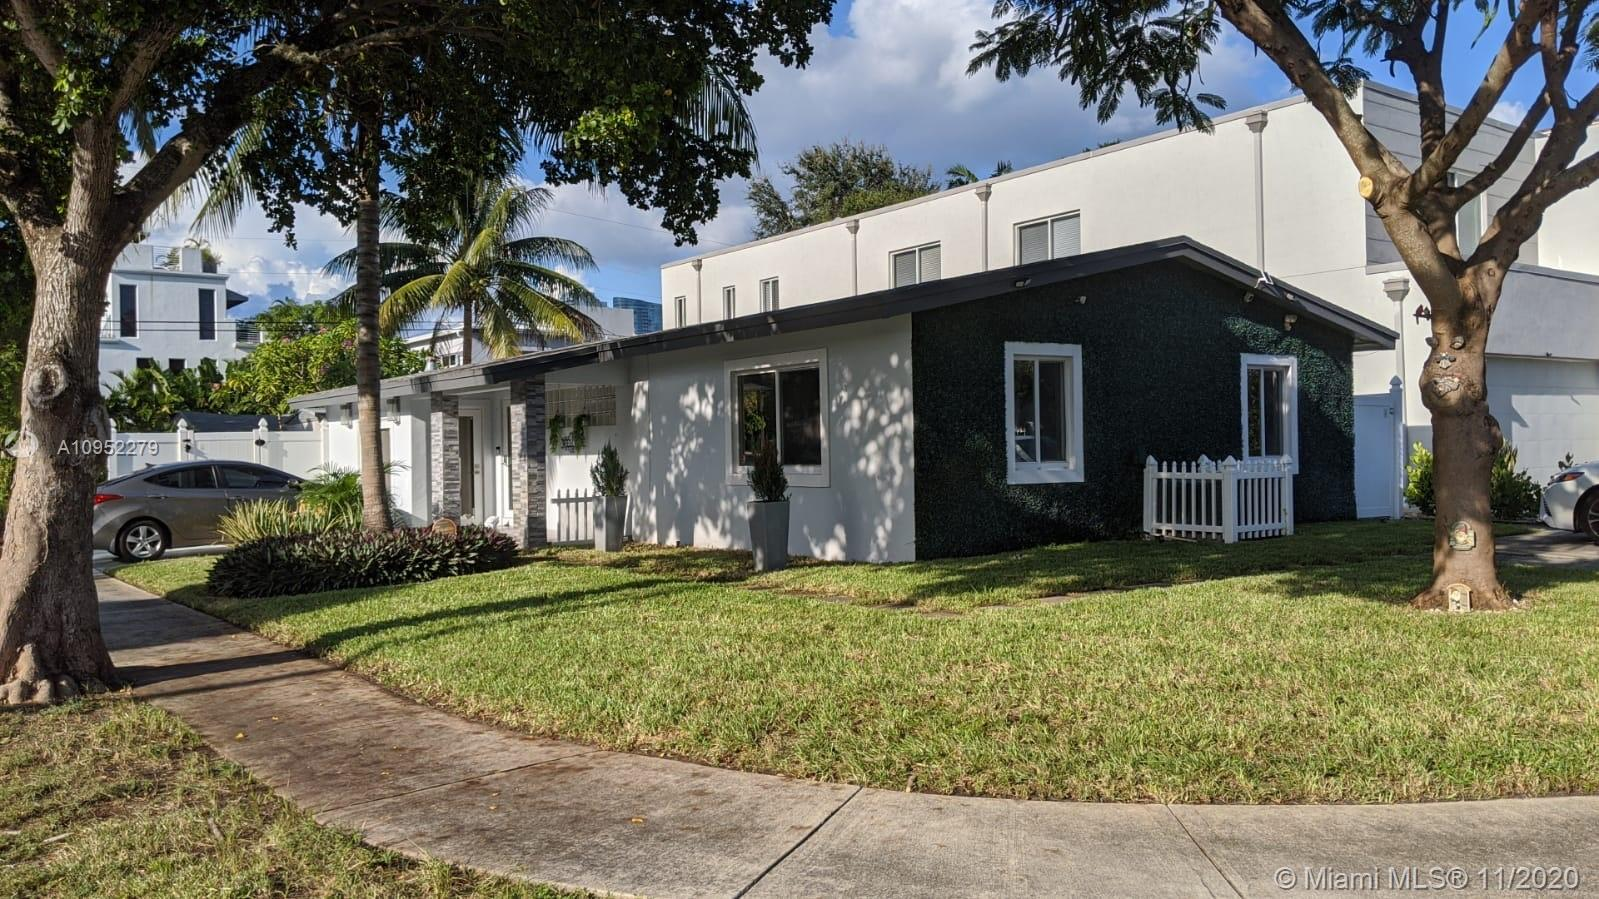 LOCATION, LOCATION. This 3/2 Single Family Home is placed in RD-15 Residential Single Family and Duplex/Medium Density zone, located close to  downtown Ft Lauderdale, Las Olas and FLL Airport. Remodeled kitchen with italian cabinetry, LED under cabinet lightning and granite  countertops. Stainless steel appliances. Professional chef over the range hood -ducted. New washer and dryer with WiFi & alexa technology. LED lightning in the entire home. Ring ® camera surveillance. English design vanity bathroom mirror.  Remodeled master bathroom. AC unit is 3 years old with ecobee thermostat. Hurricane impact windows and doors. Newly remodeled backyard with large storage shed. Sprinkler system recently maintained and upgraded. Italian tile on floors and porch area. It won't last.